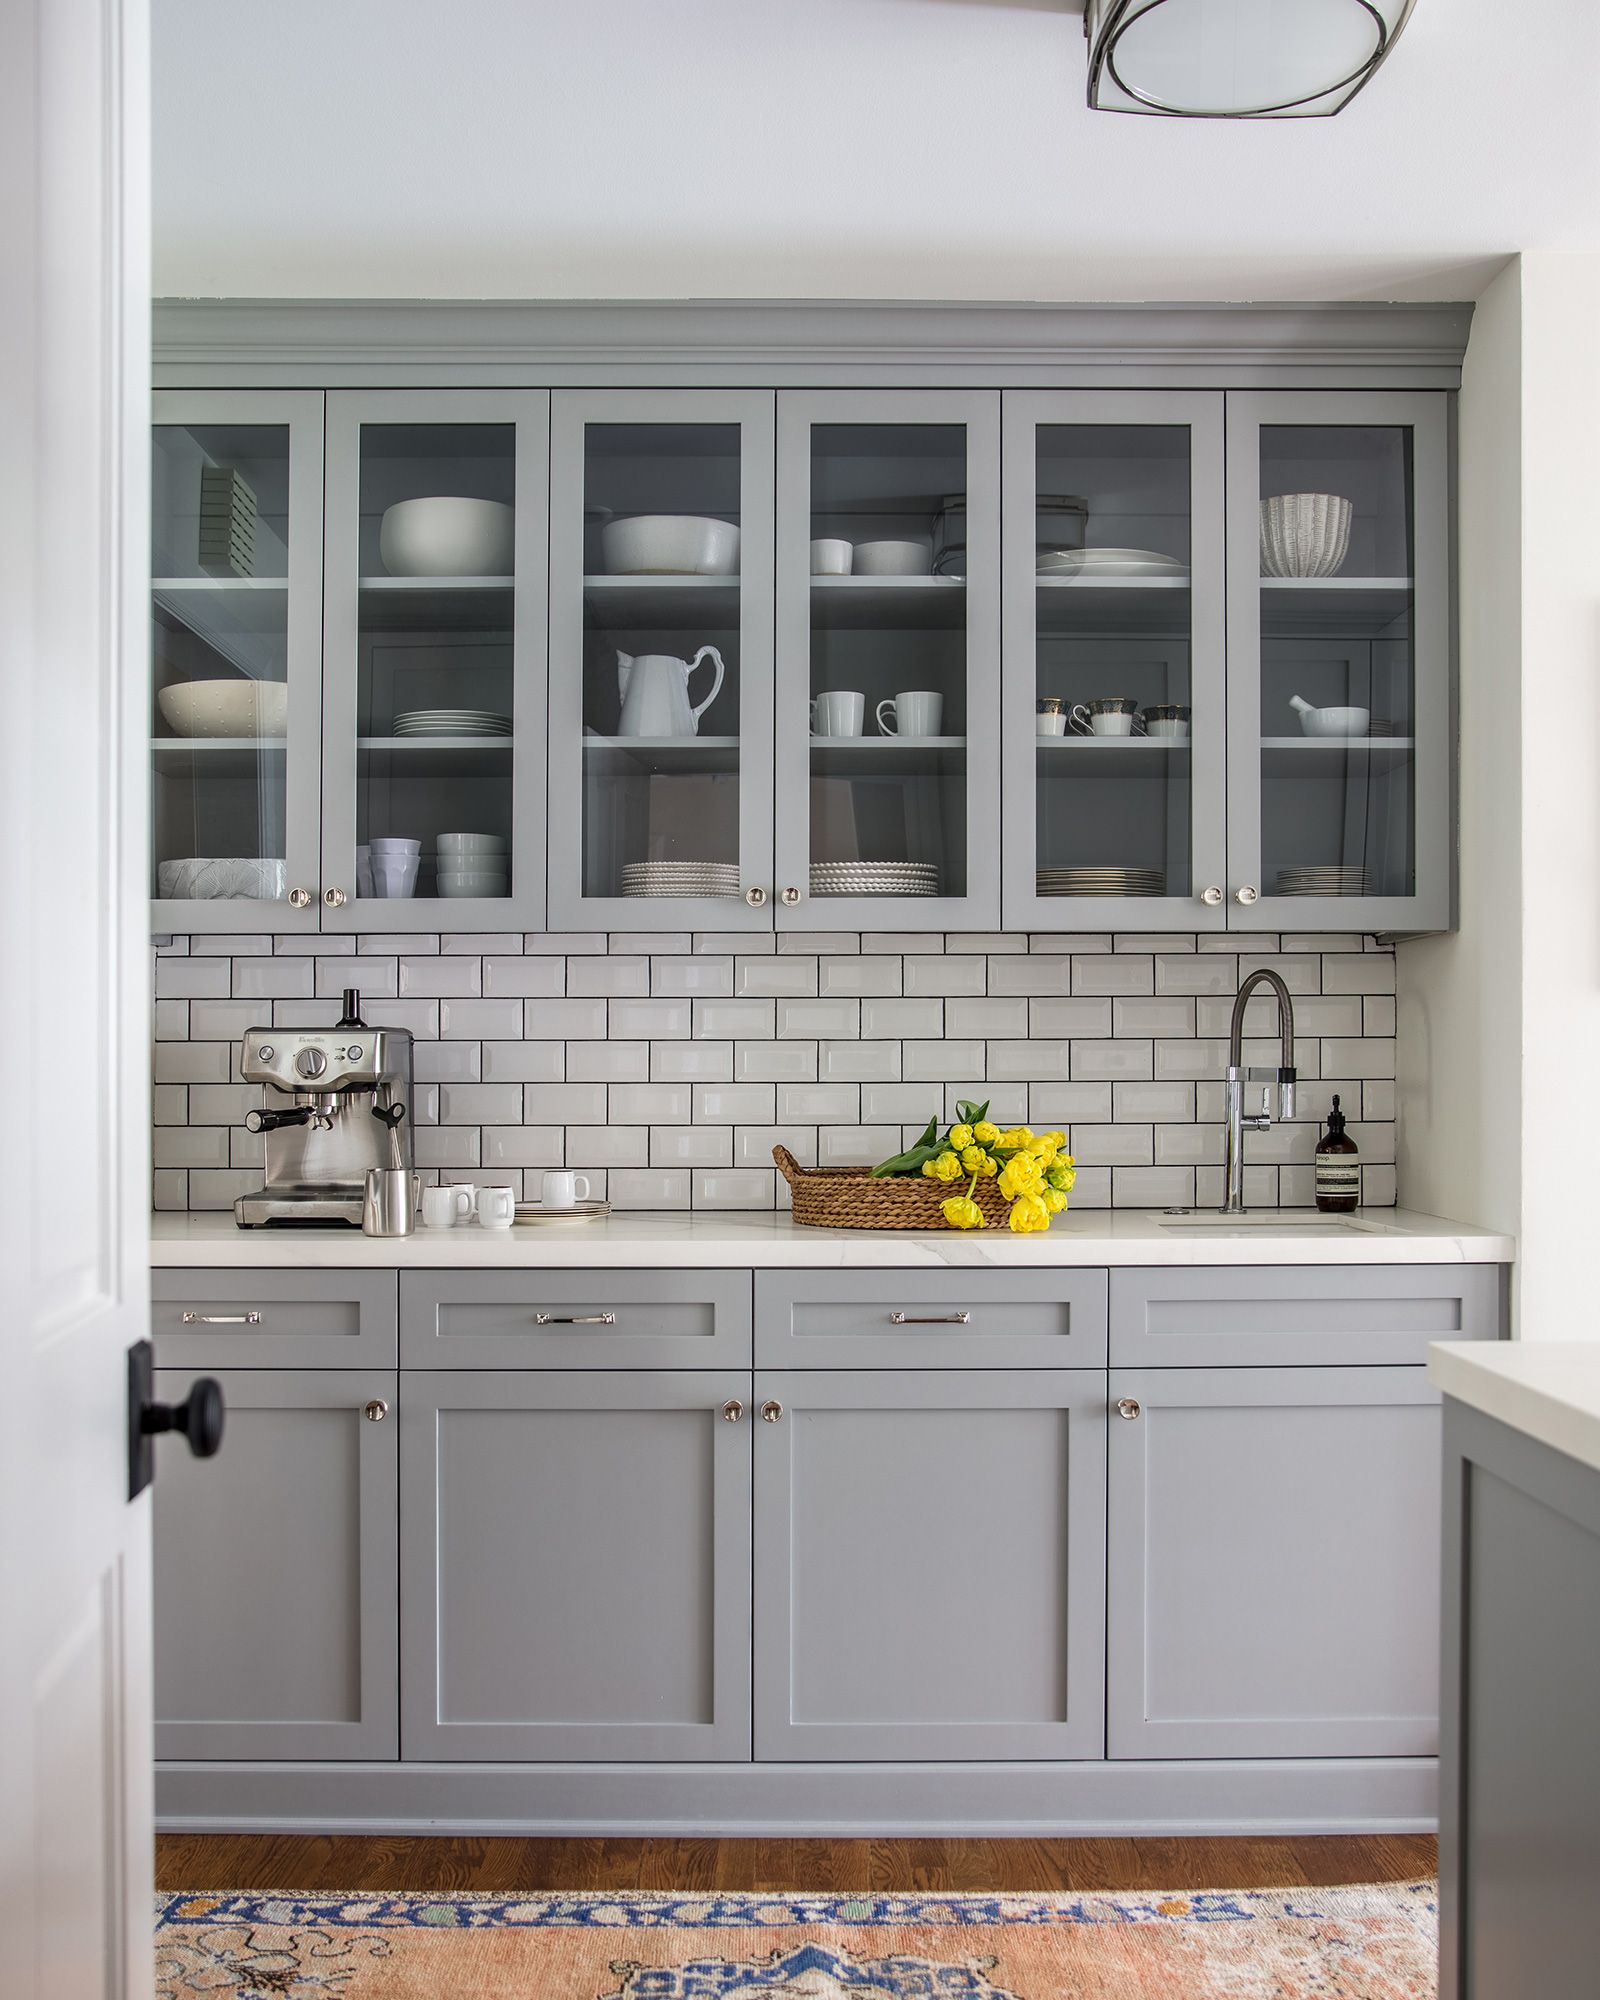 Blue Gray Cabinetry In The Kitchen With White Subway Tile And Dark Grout Antique Runner With Dark Grey Kitchen Cabinets Grey Kitchen Cabinets Kitchen Design